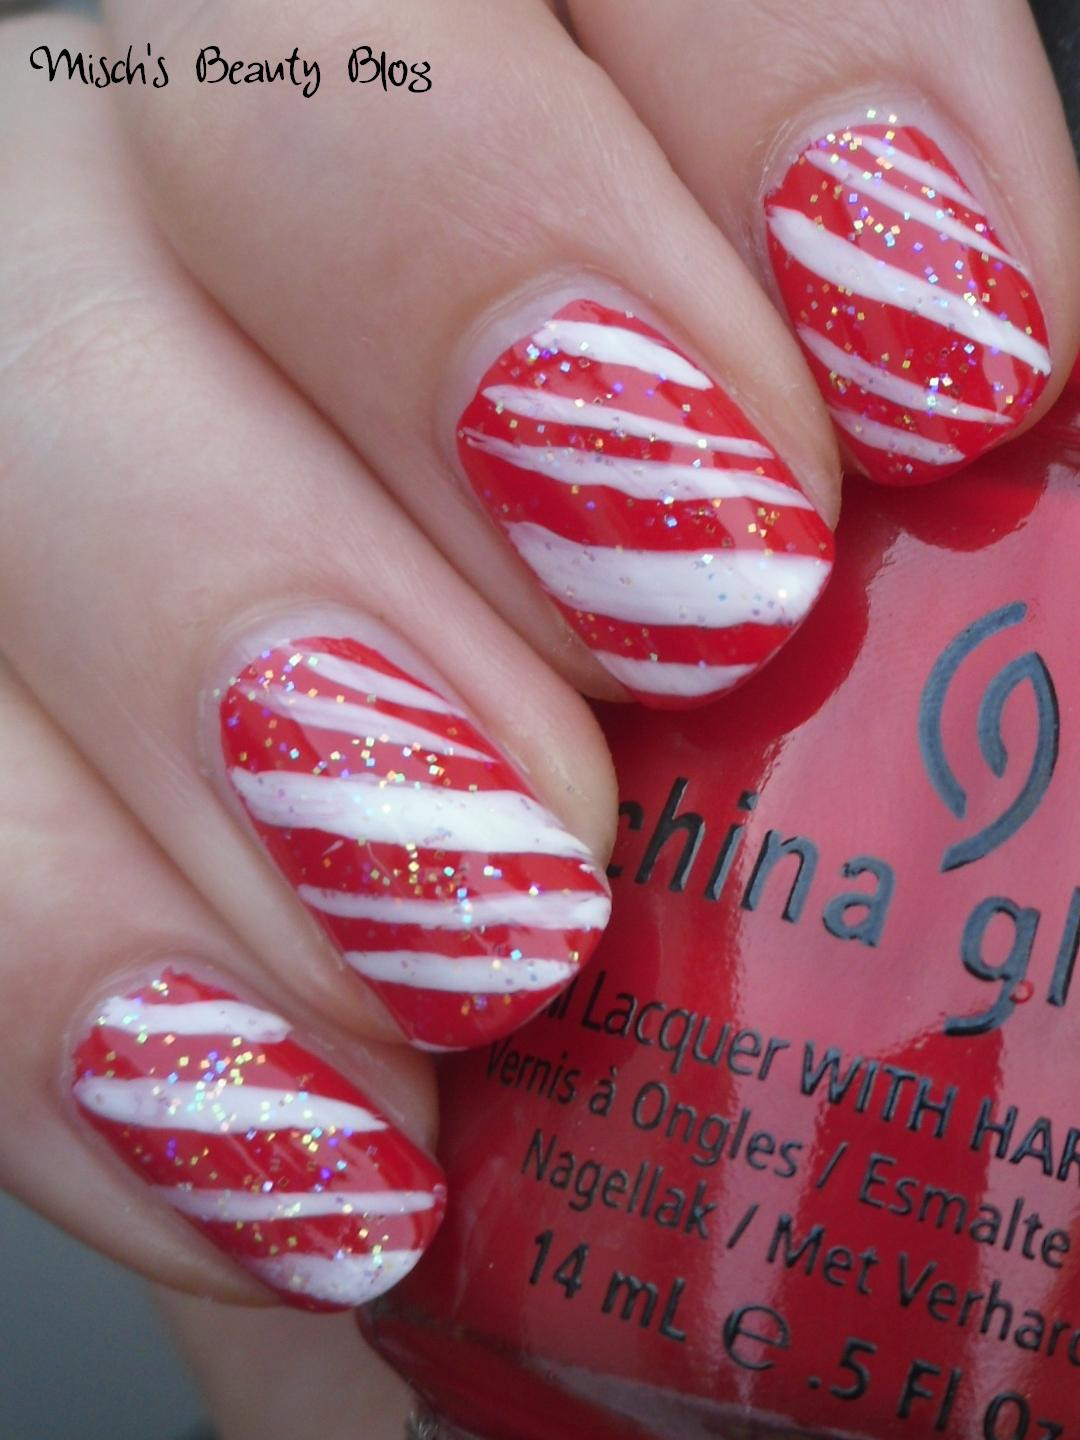 Christmas Nails Candy Cane  Misch s Beauty Blog NOTD December 15th Candy Cane Nail Art